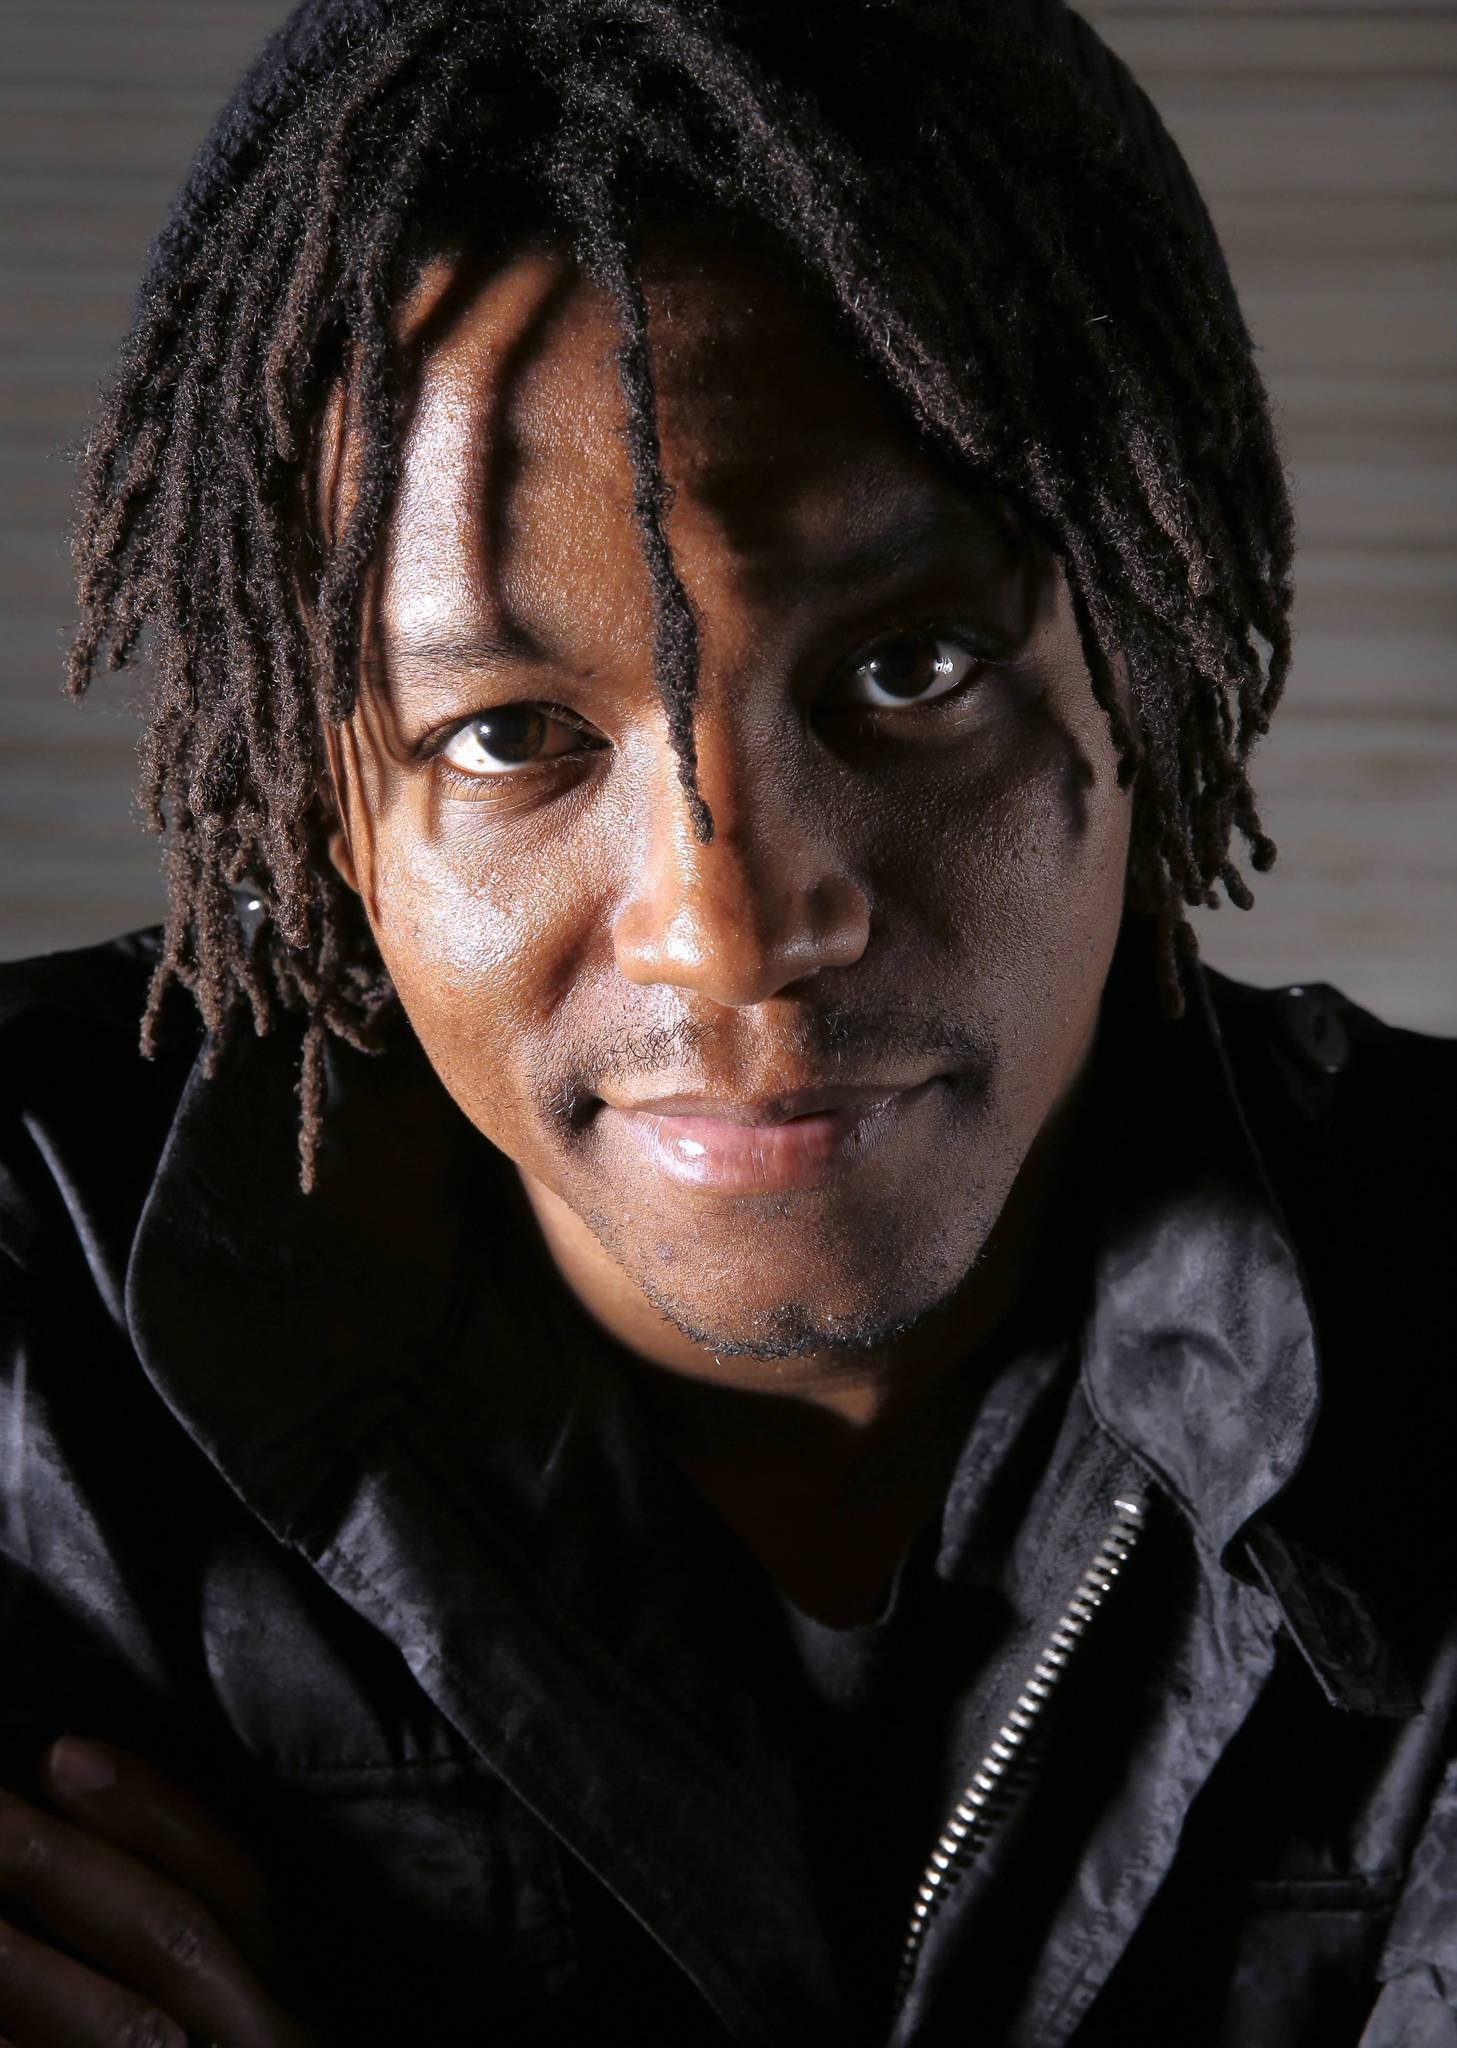 Lupe Fiasco Chicagoan of the year; Lupe Fiasco profiled ...